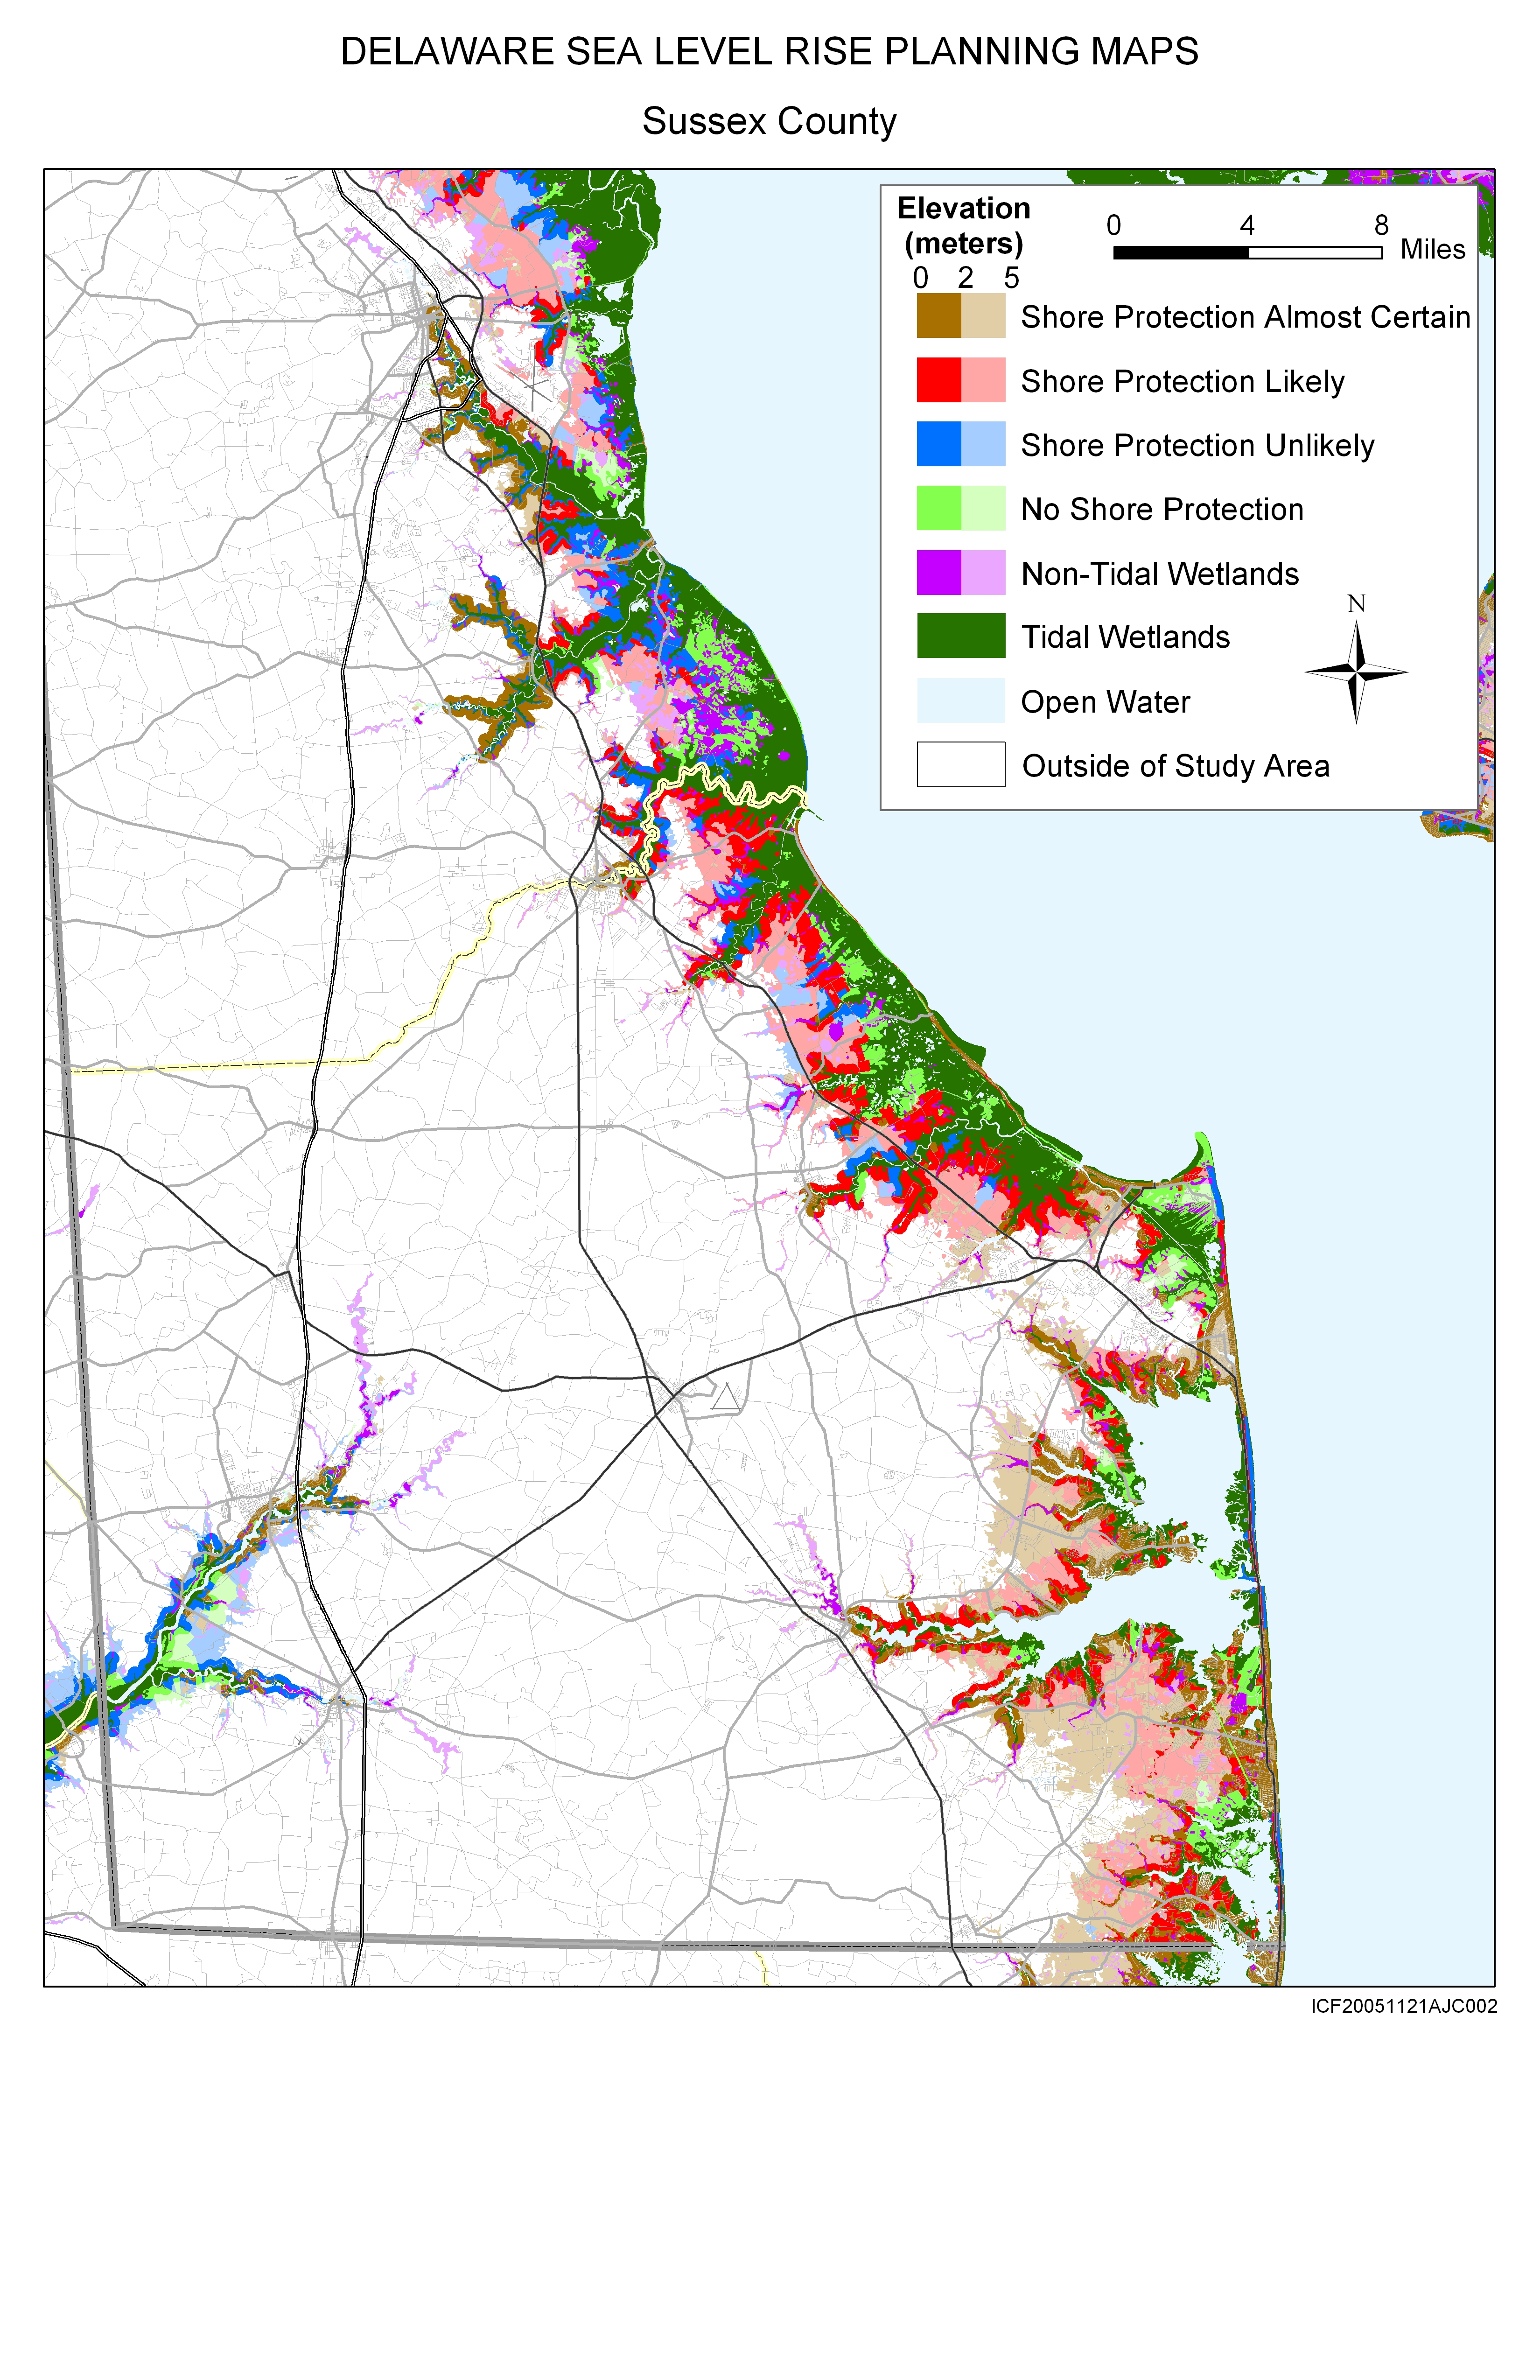 Sea Level Rise Planning Maps Likelihood Of Shore Protection In Delaware